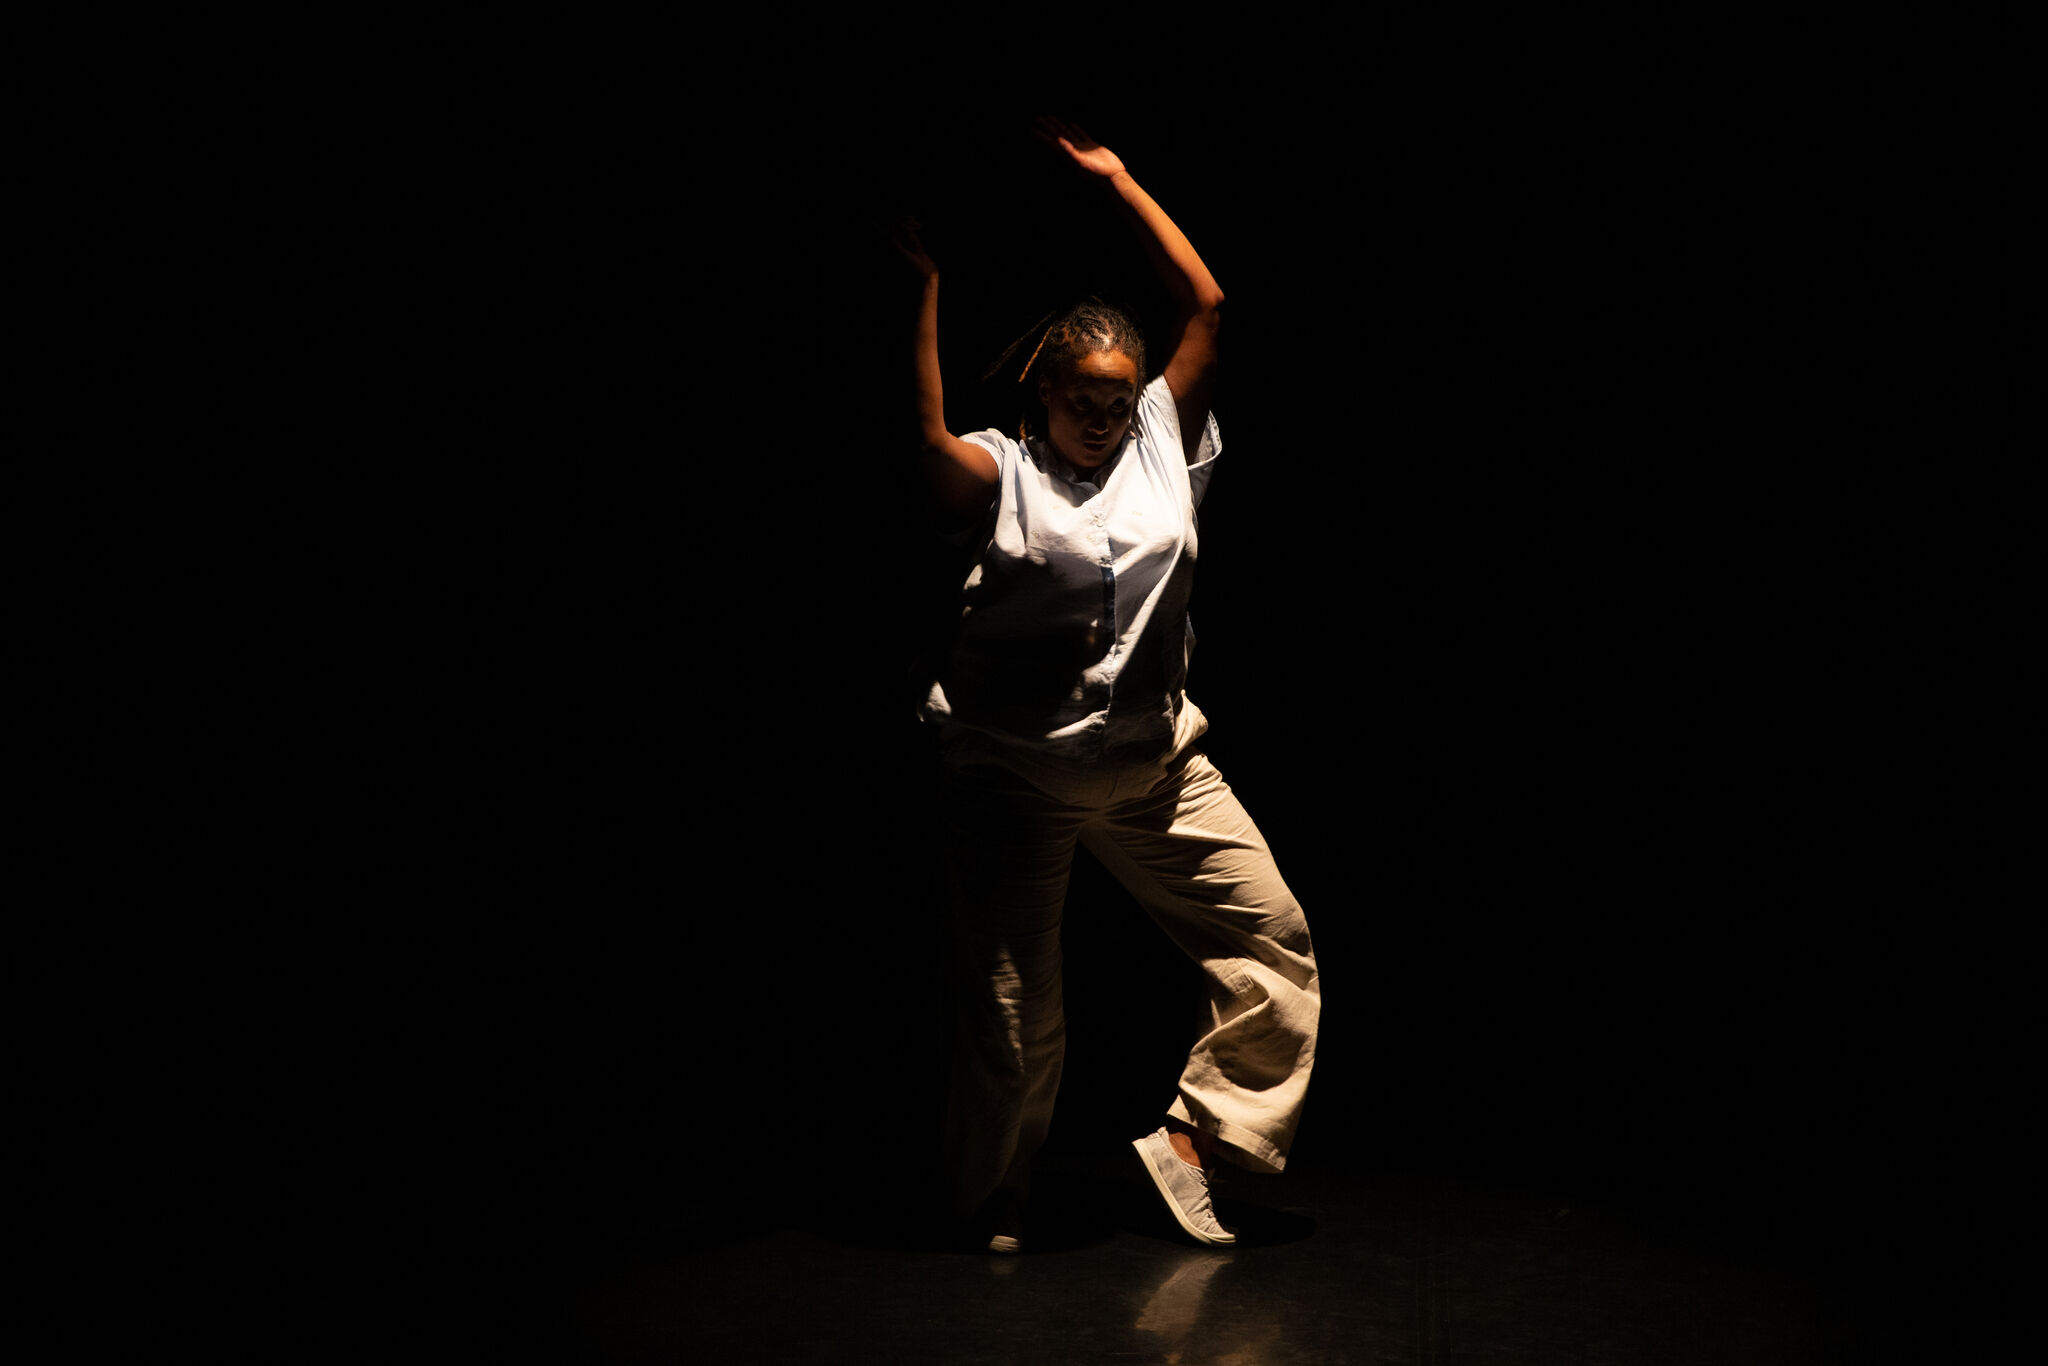 A Black person dances in narrow shaft of light, surrounded by darkness. They wear a light blue button-down, tan pants and white sneakers.